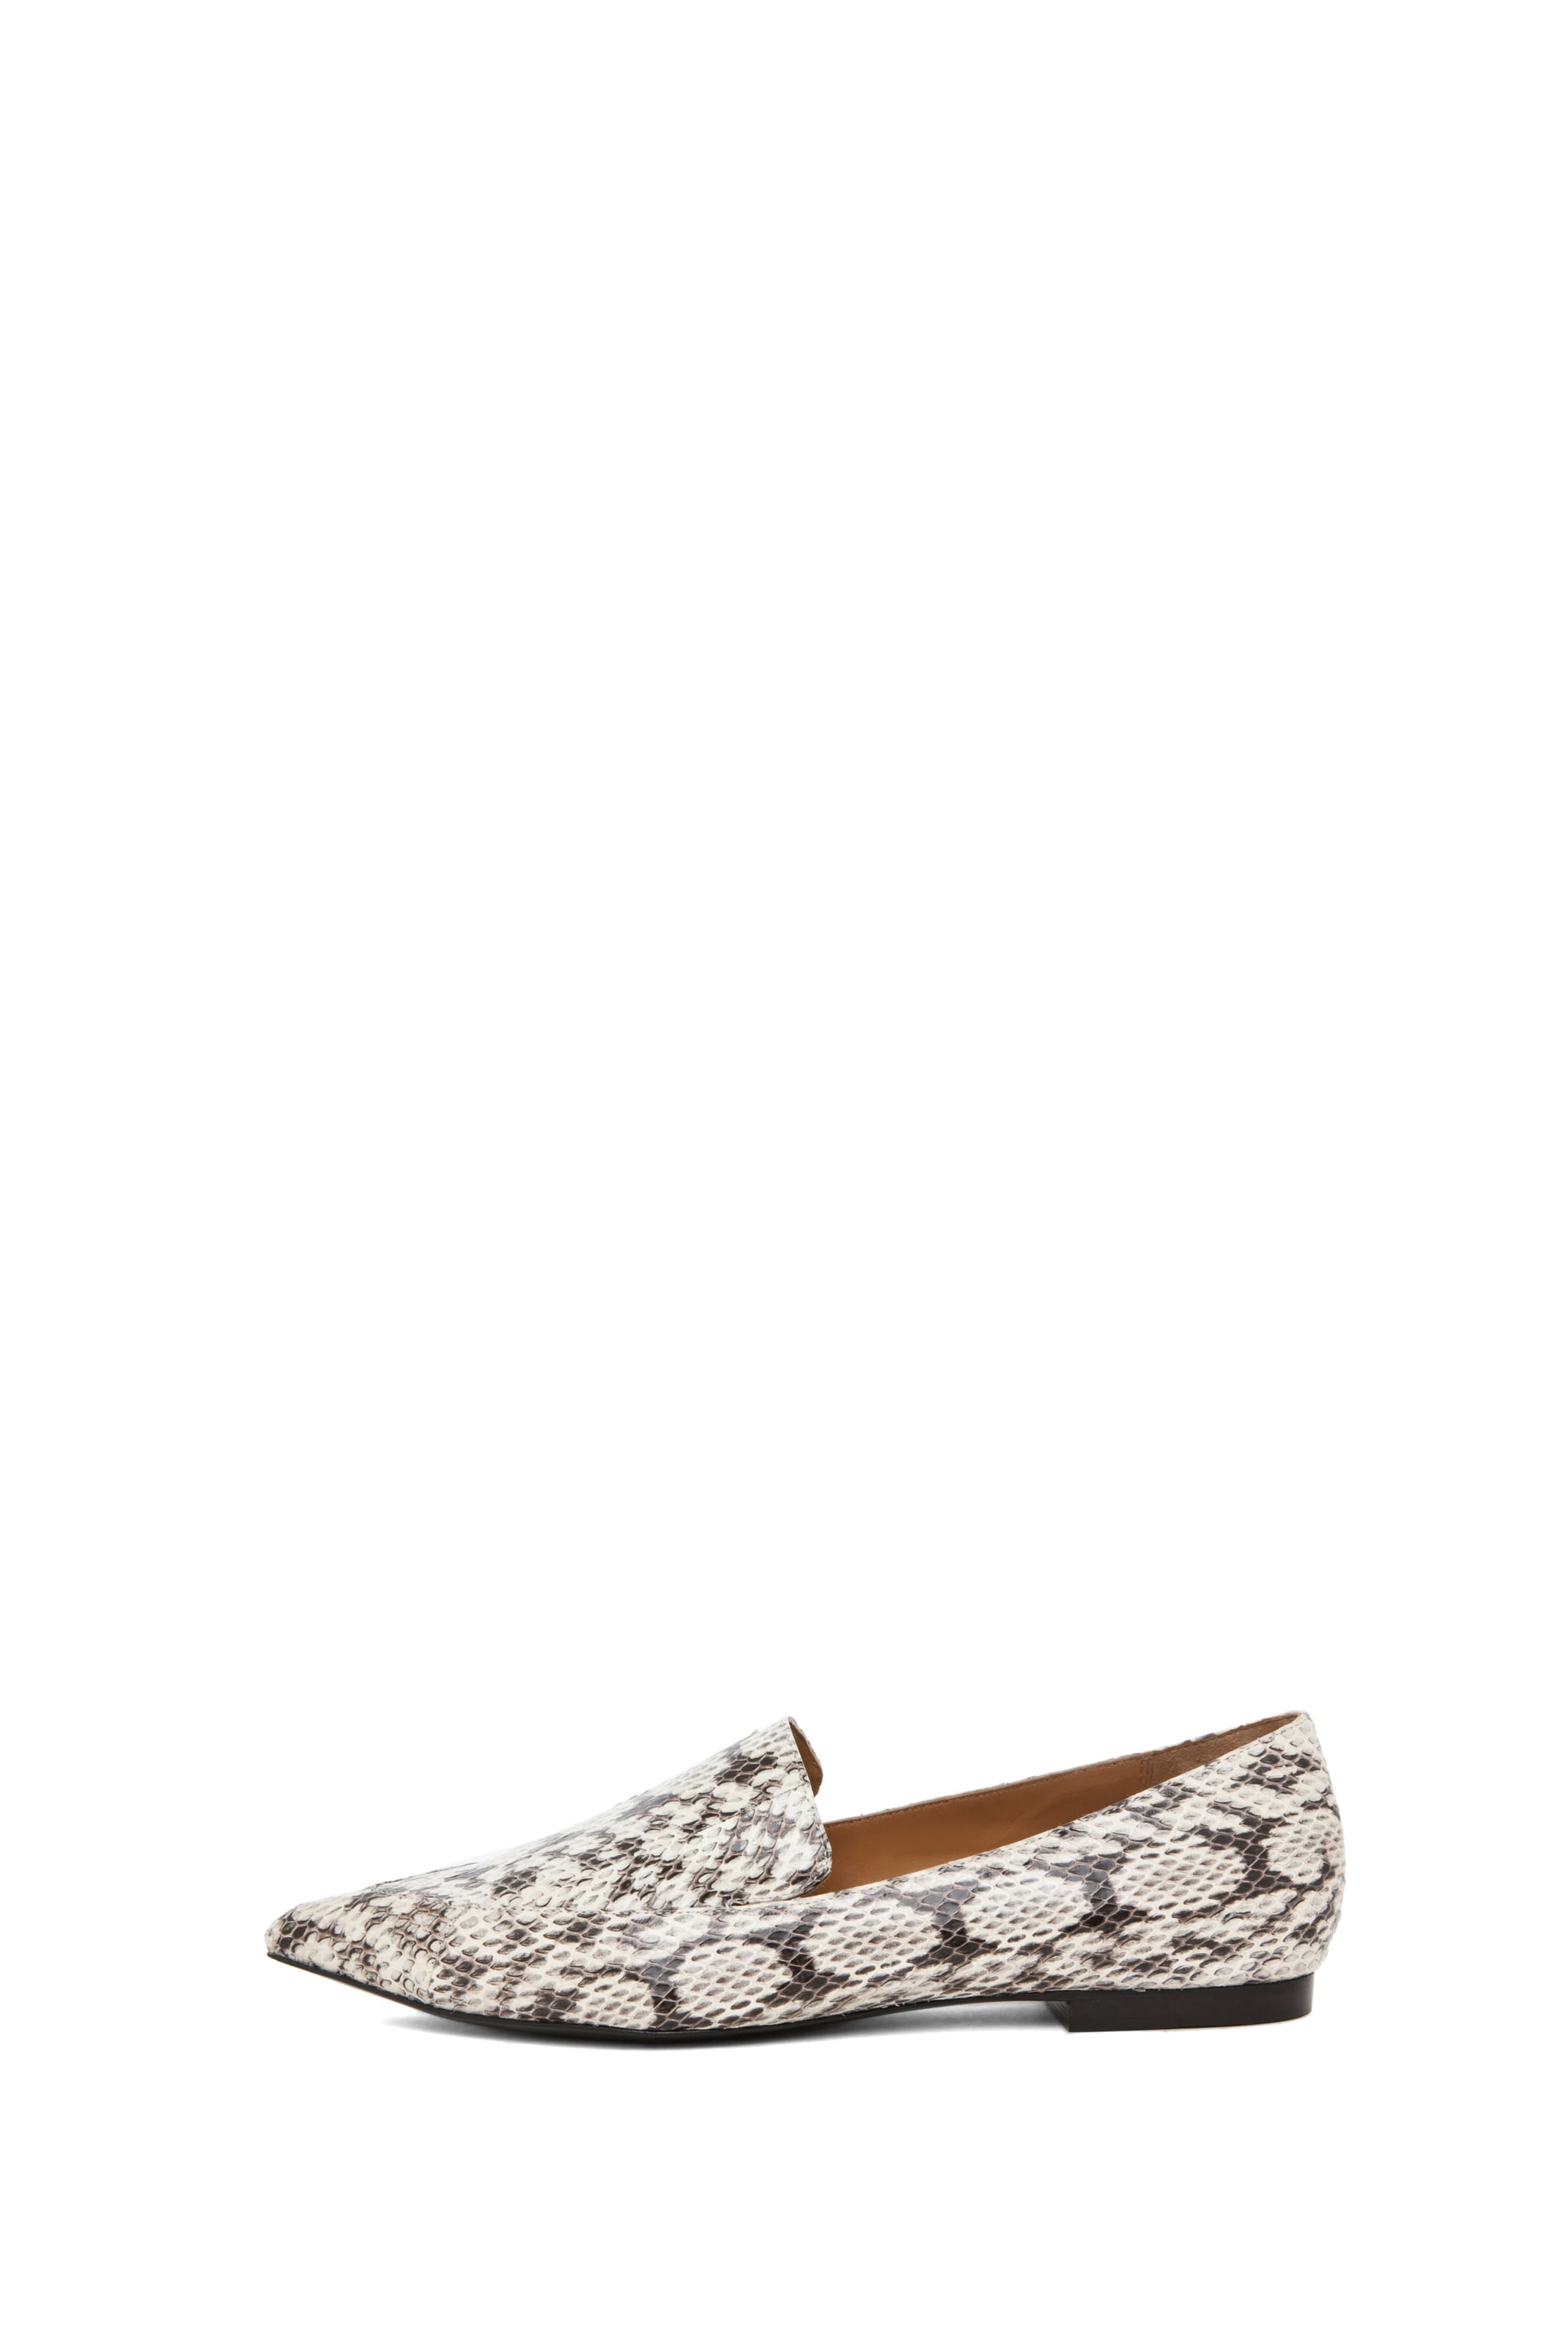 Image 1 of 3.1 phillip lim Spade Loafer Flat in Natural